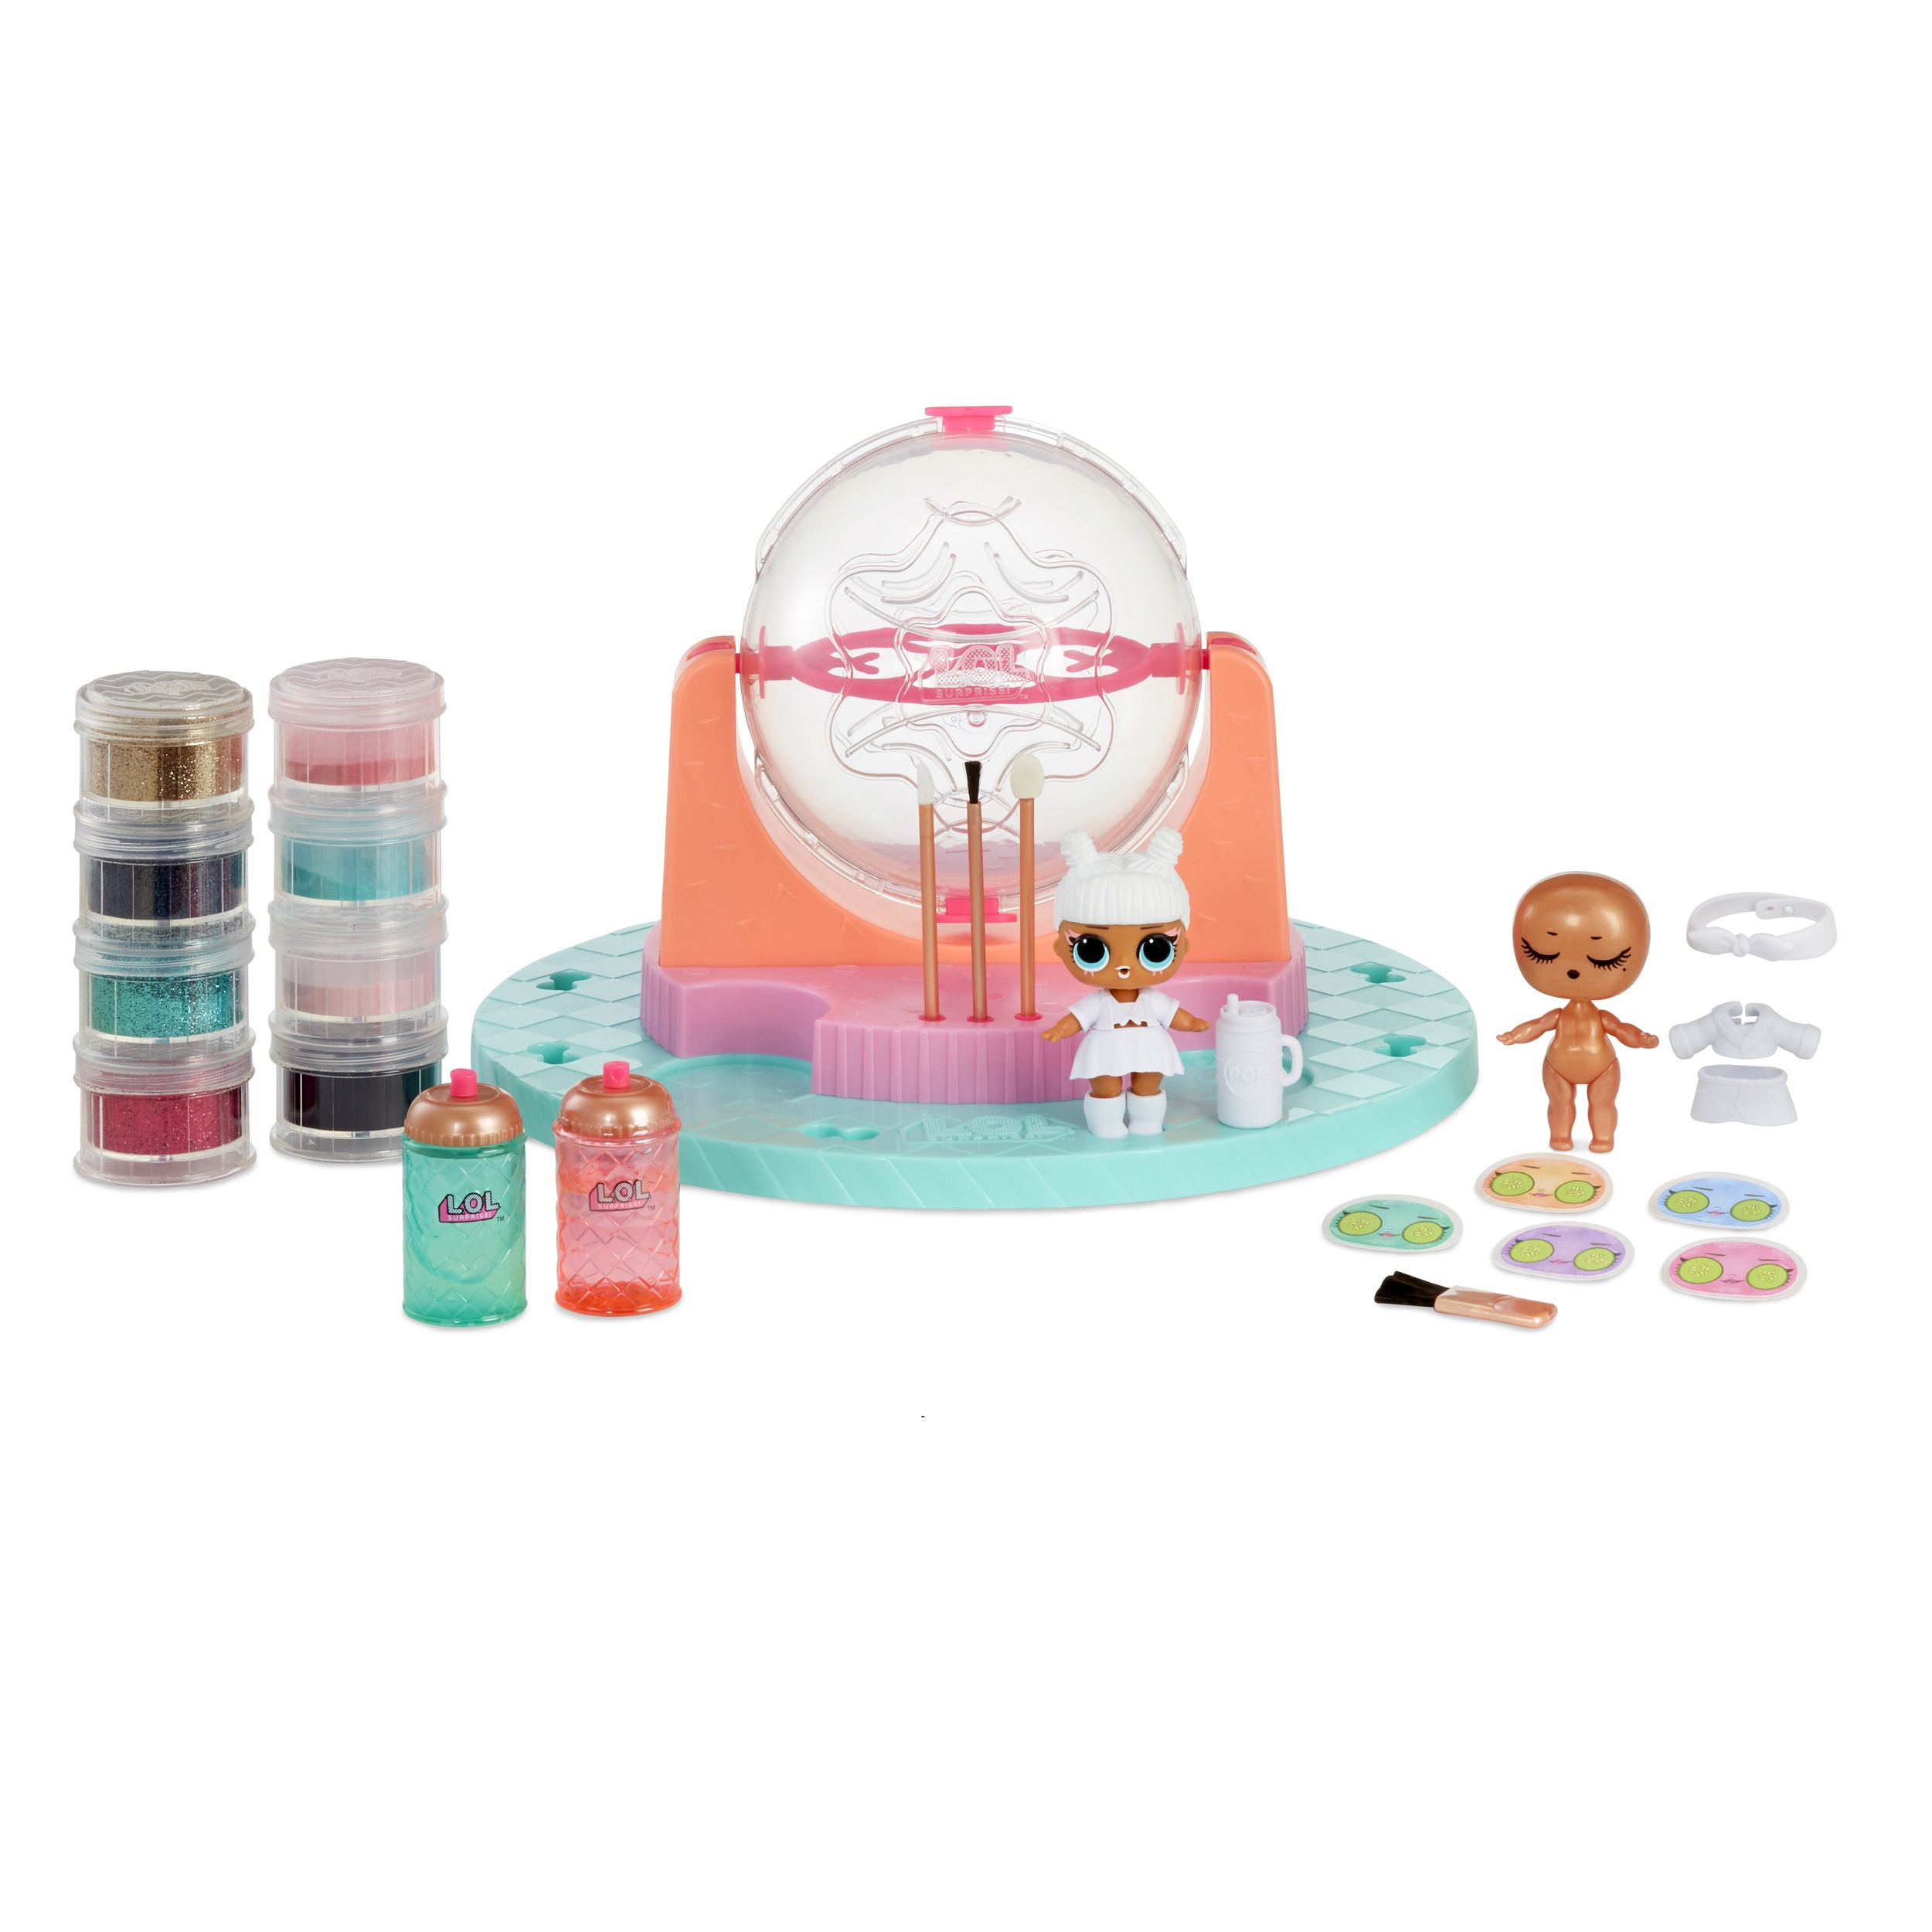 L O L Surprise Diy Glitter Factory Playset With Exclusive Doll